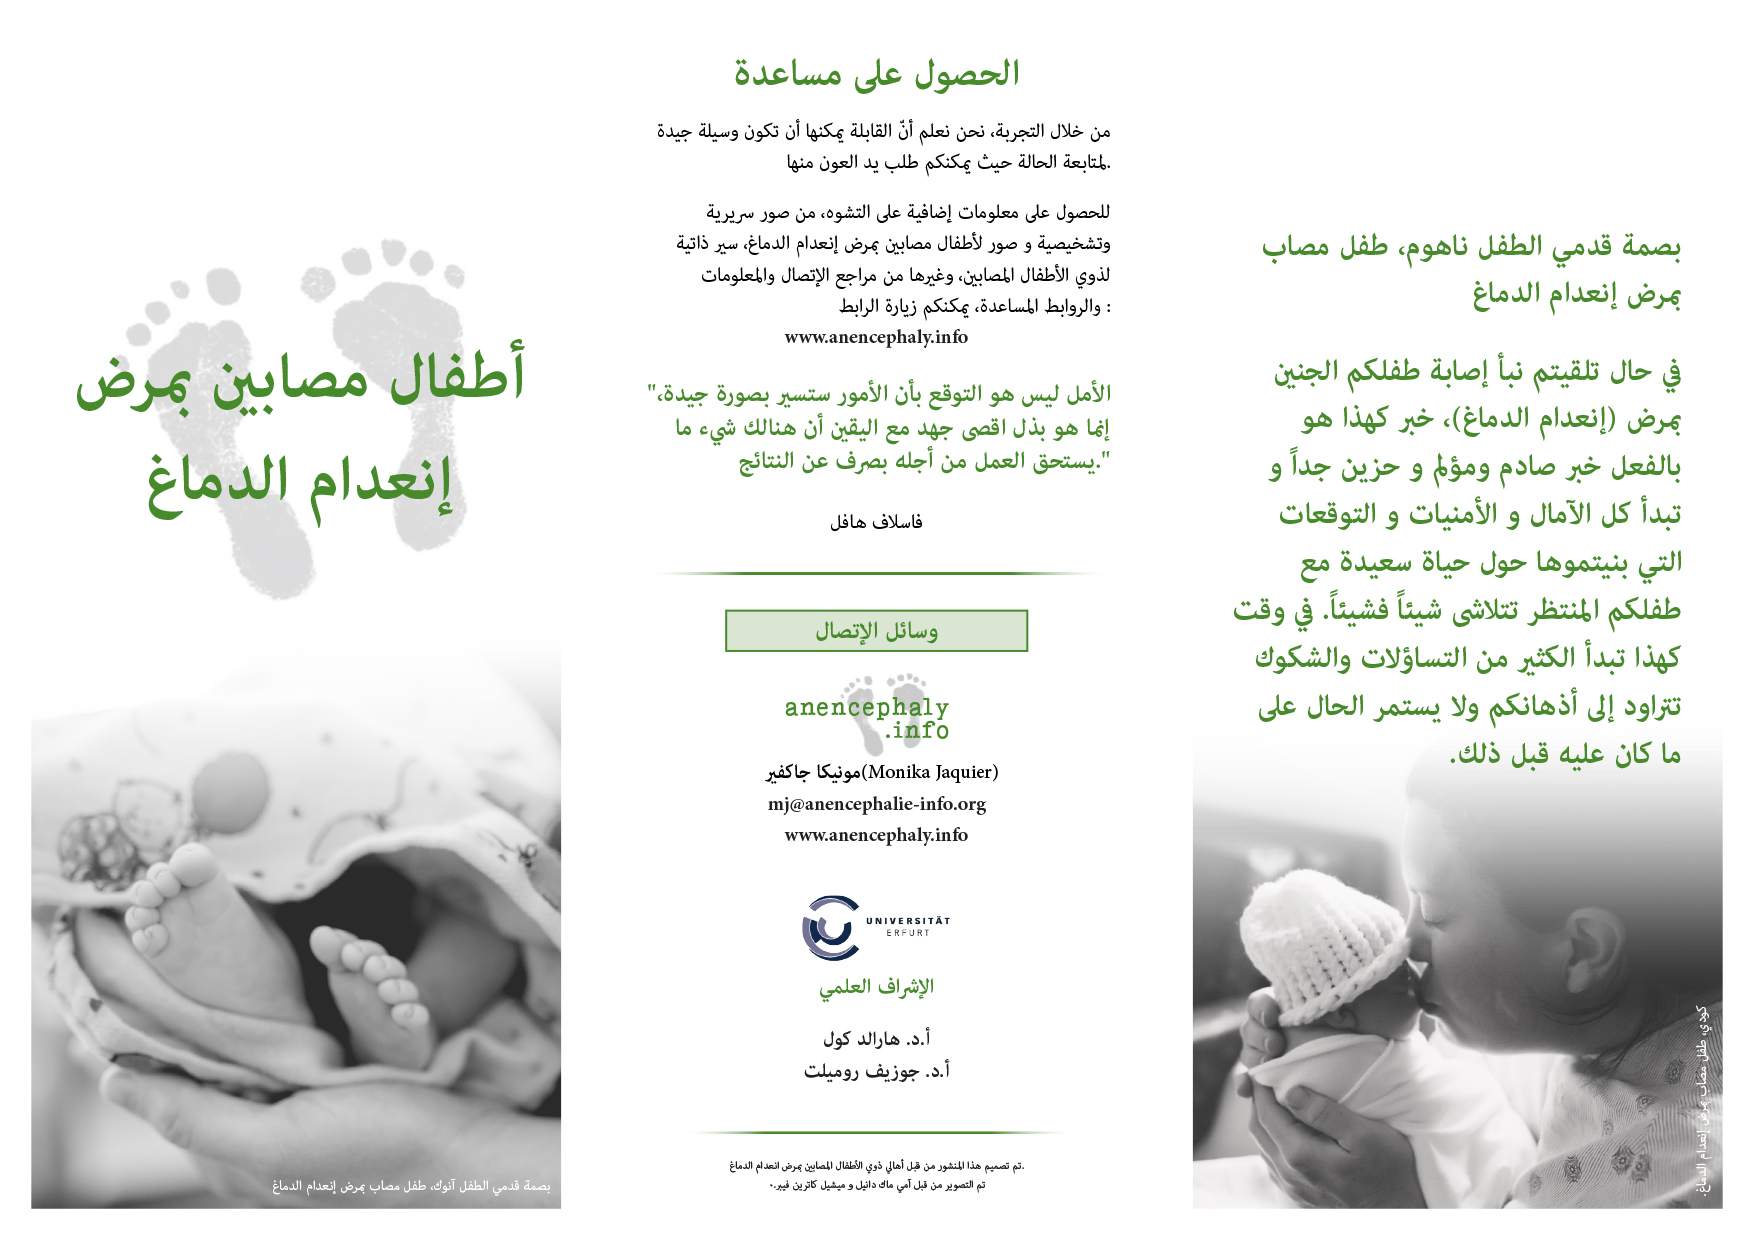 Arabic brochure layout.jpg